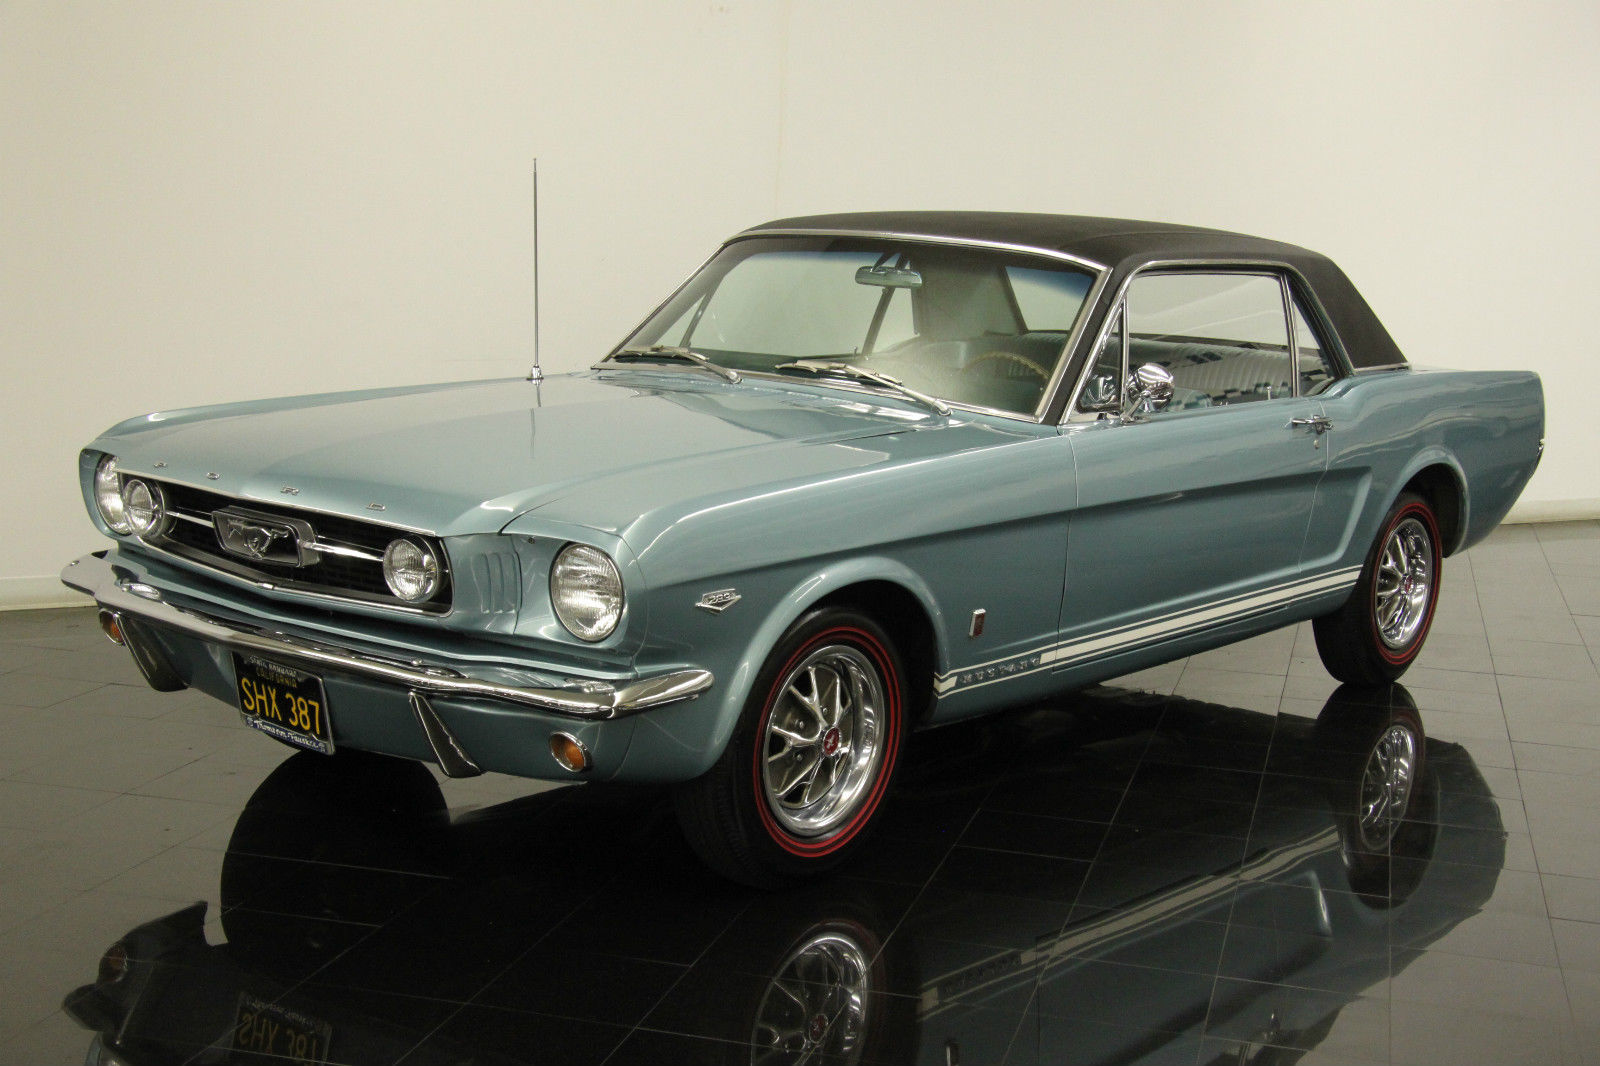 1966 Ford Mustang GT K code Coupe -122